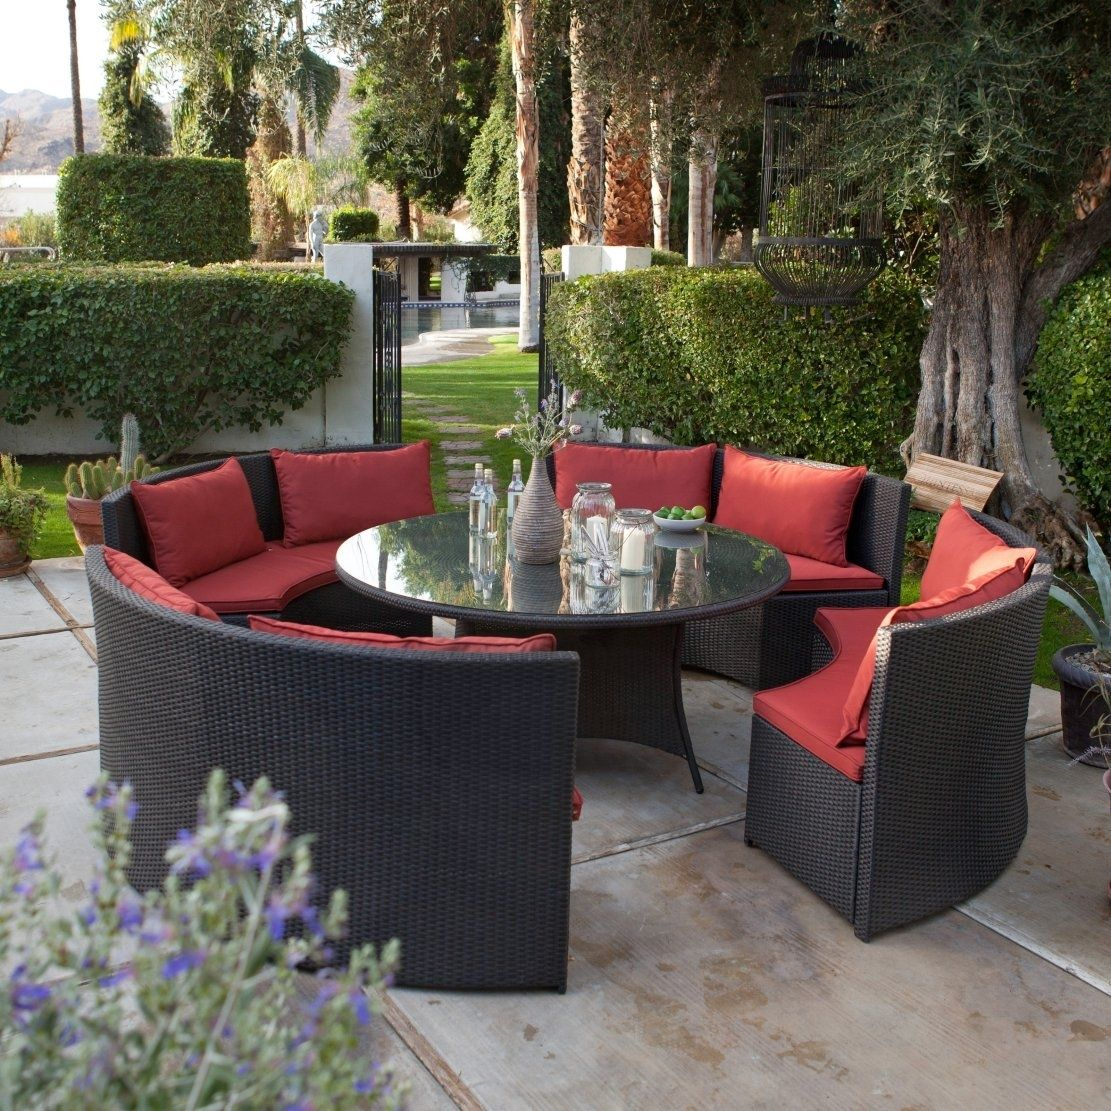 Modern 8-Seat Wicker Resin Patio Dining Set with Red Cushions #resinpatiofurniture